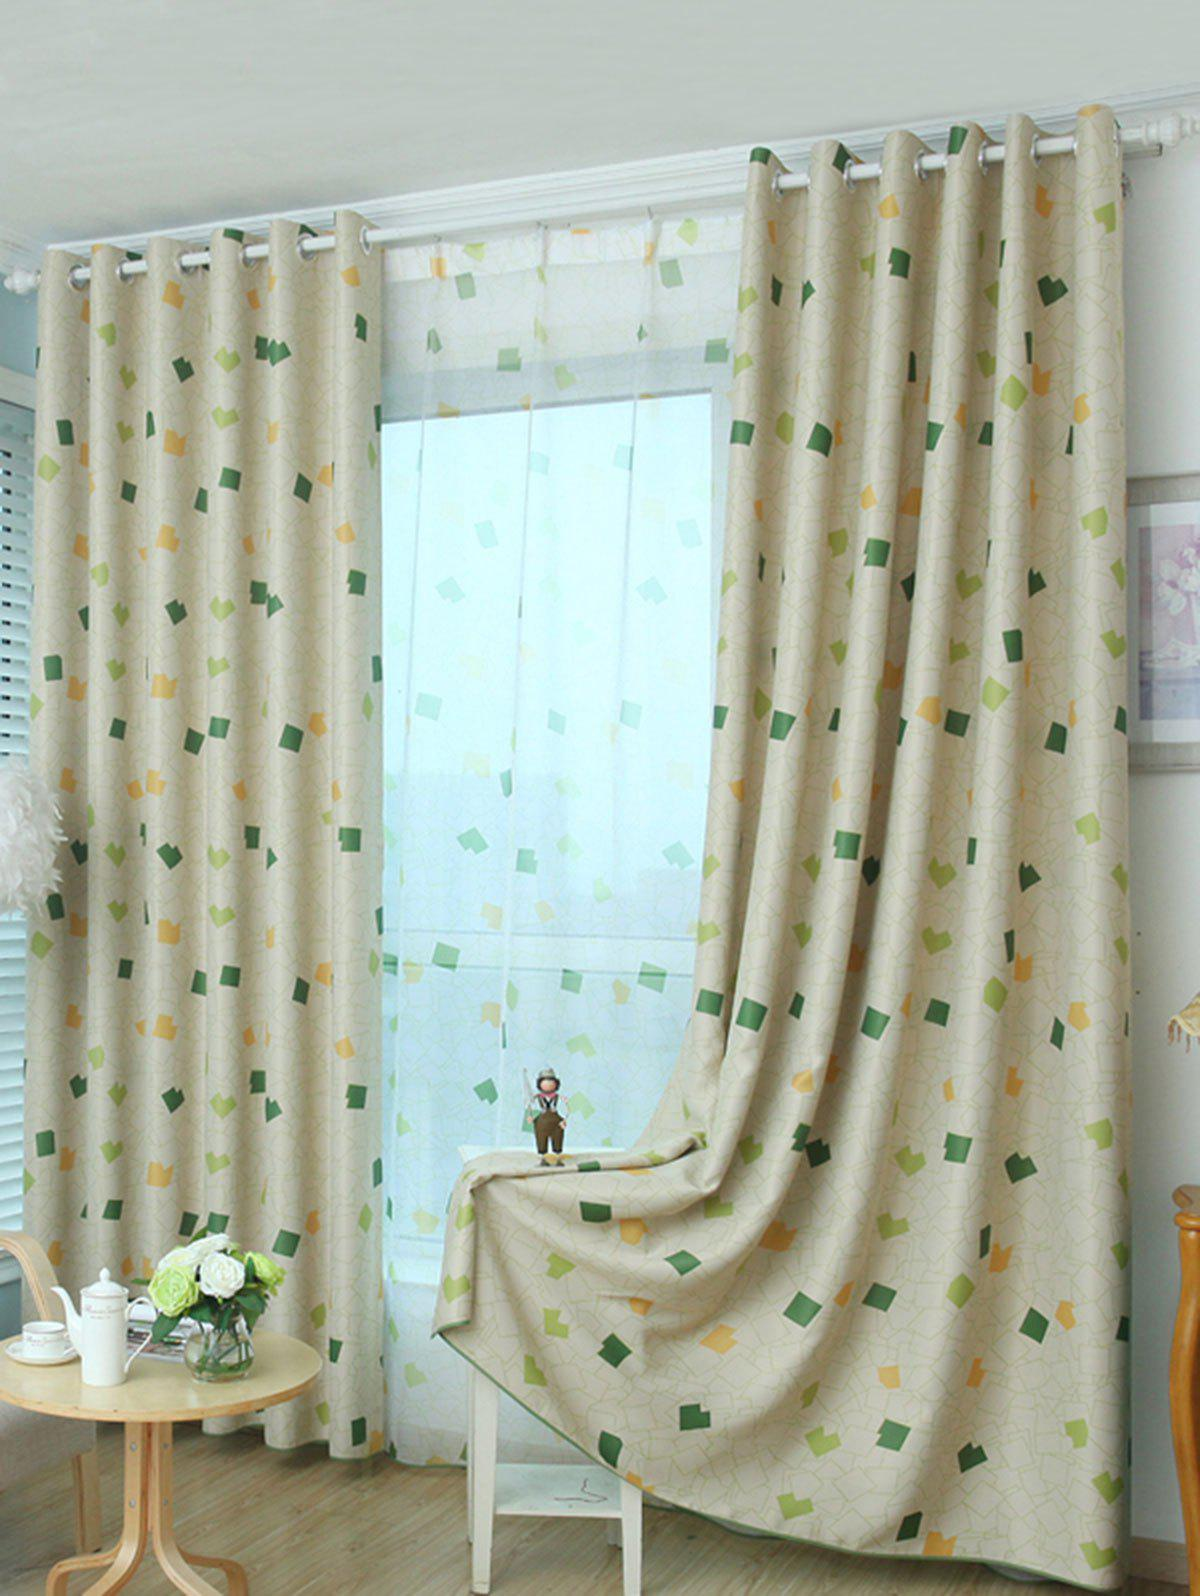 curtain for blue room drapes from voile garden living home fabric white item curtains embroidery tulle blackout flower bedroom in shade